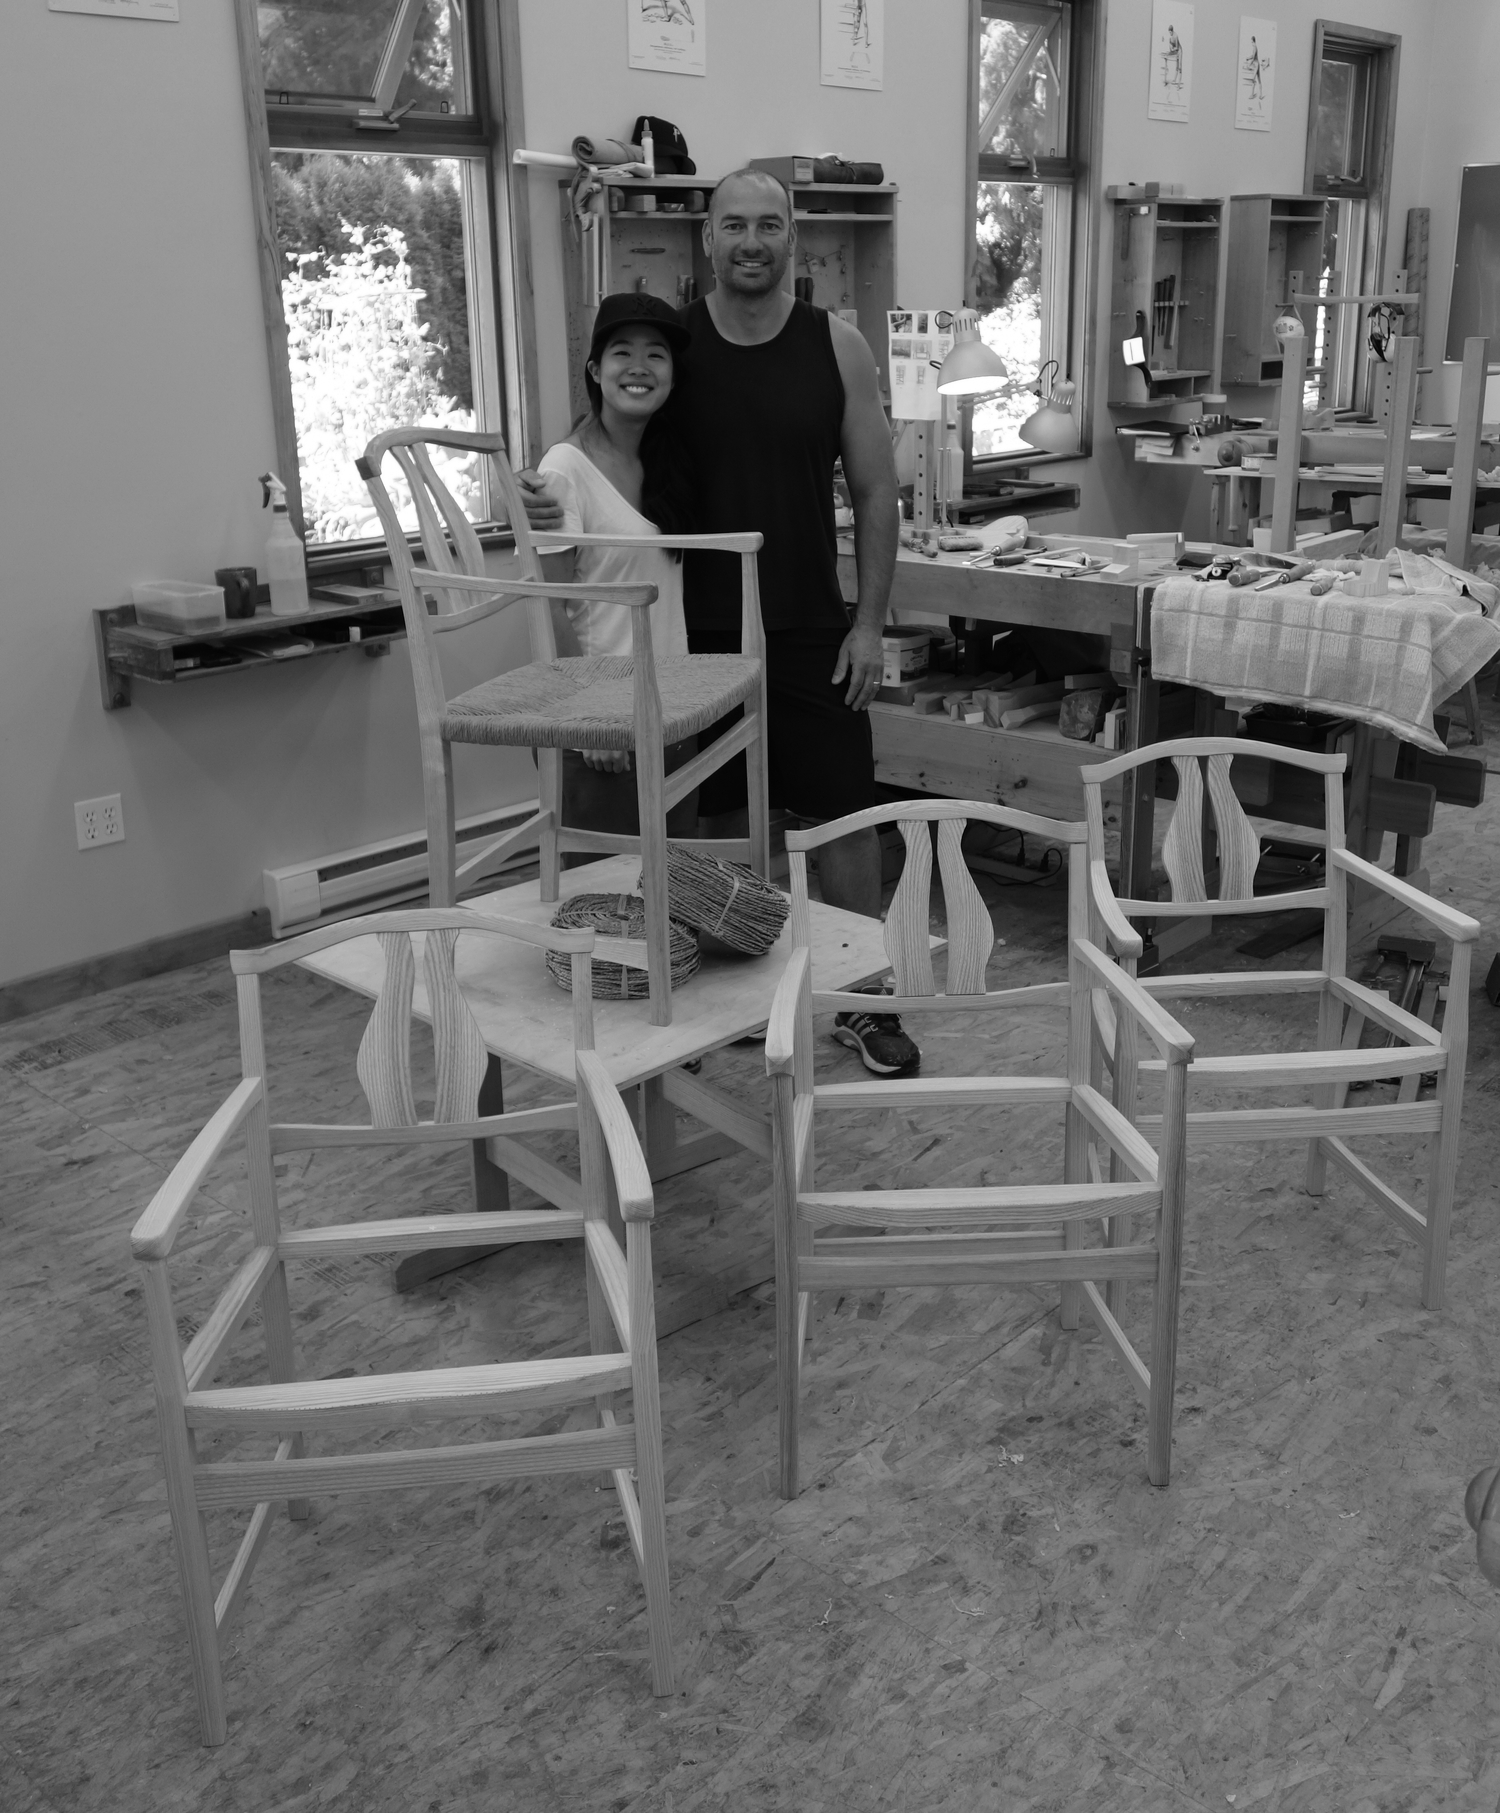 Nondas and I with our chairs nearing completion